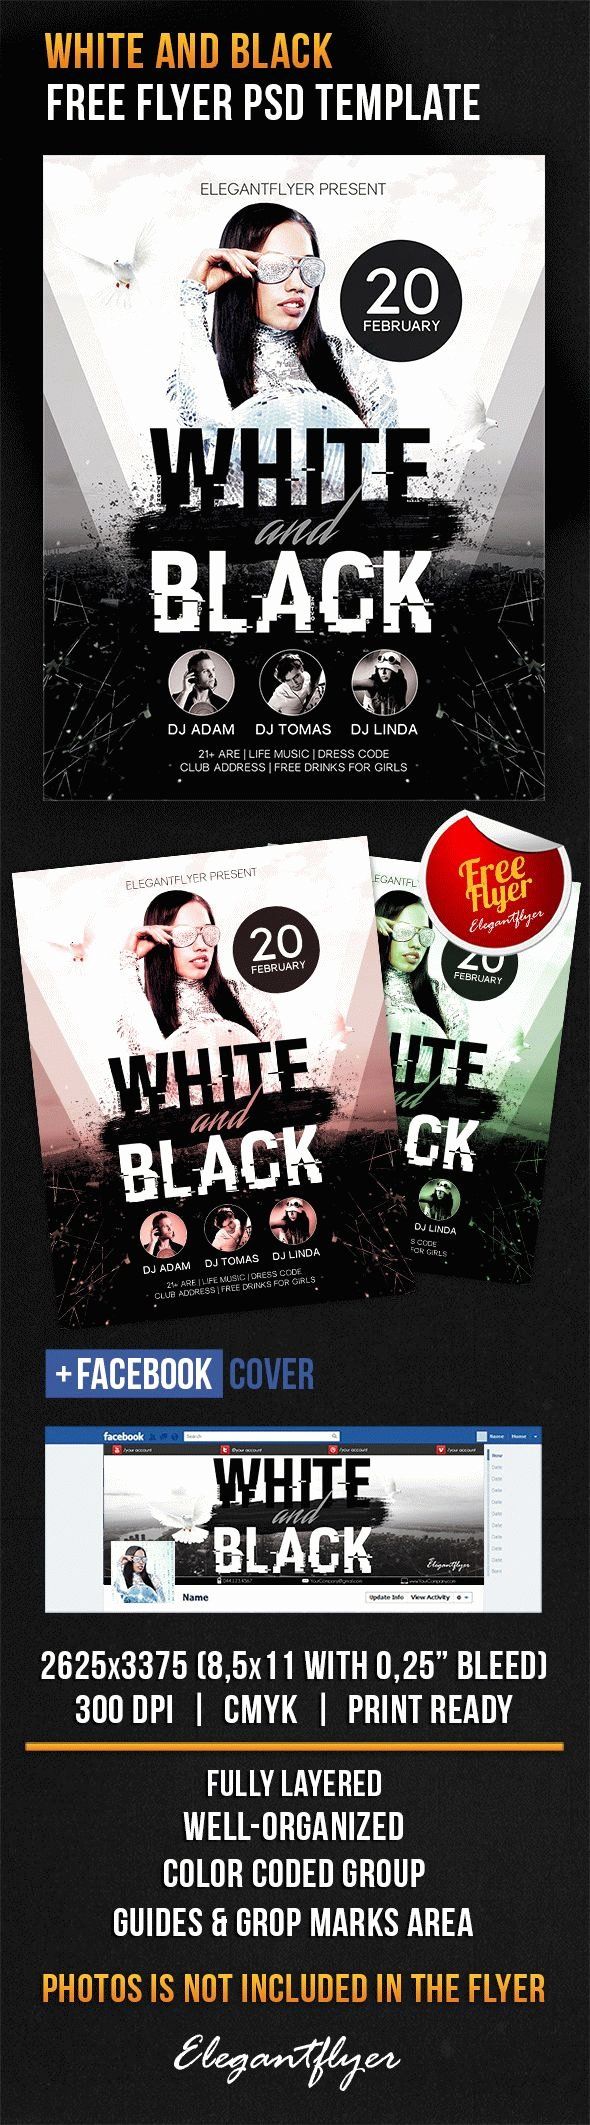 Black and White Flyer Templates Best Of White and Black – Free Flyer Psd Template – by Elegantflyer